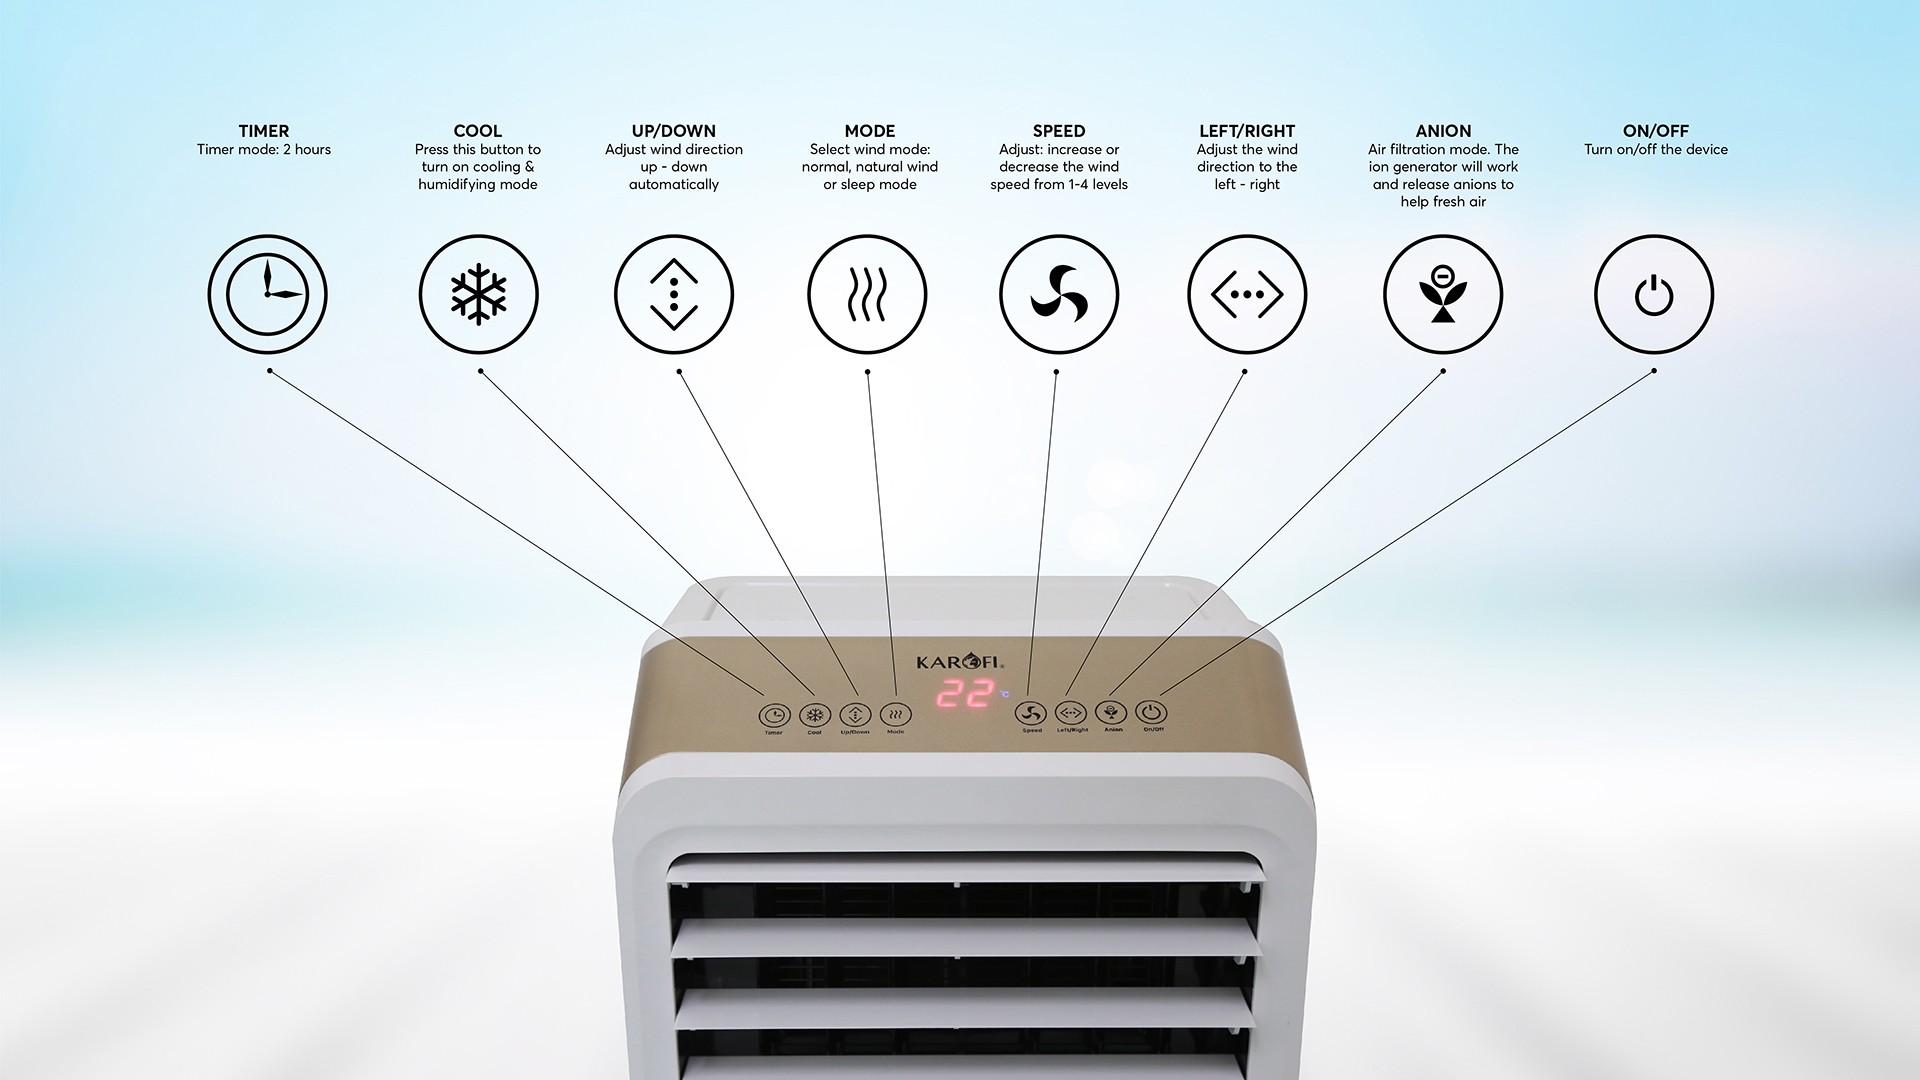 2-way-air-conditioning-fan-karofi-kac-020hr-4